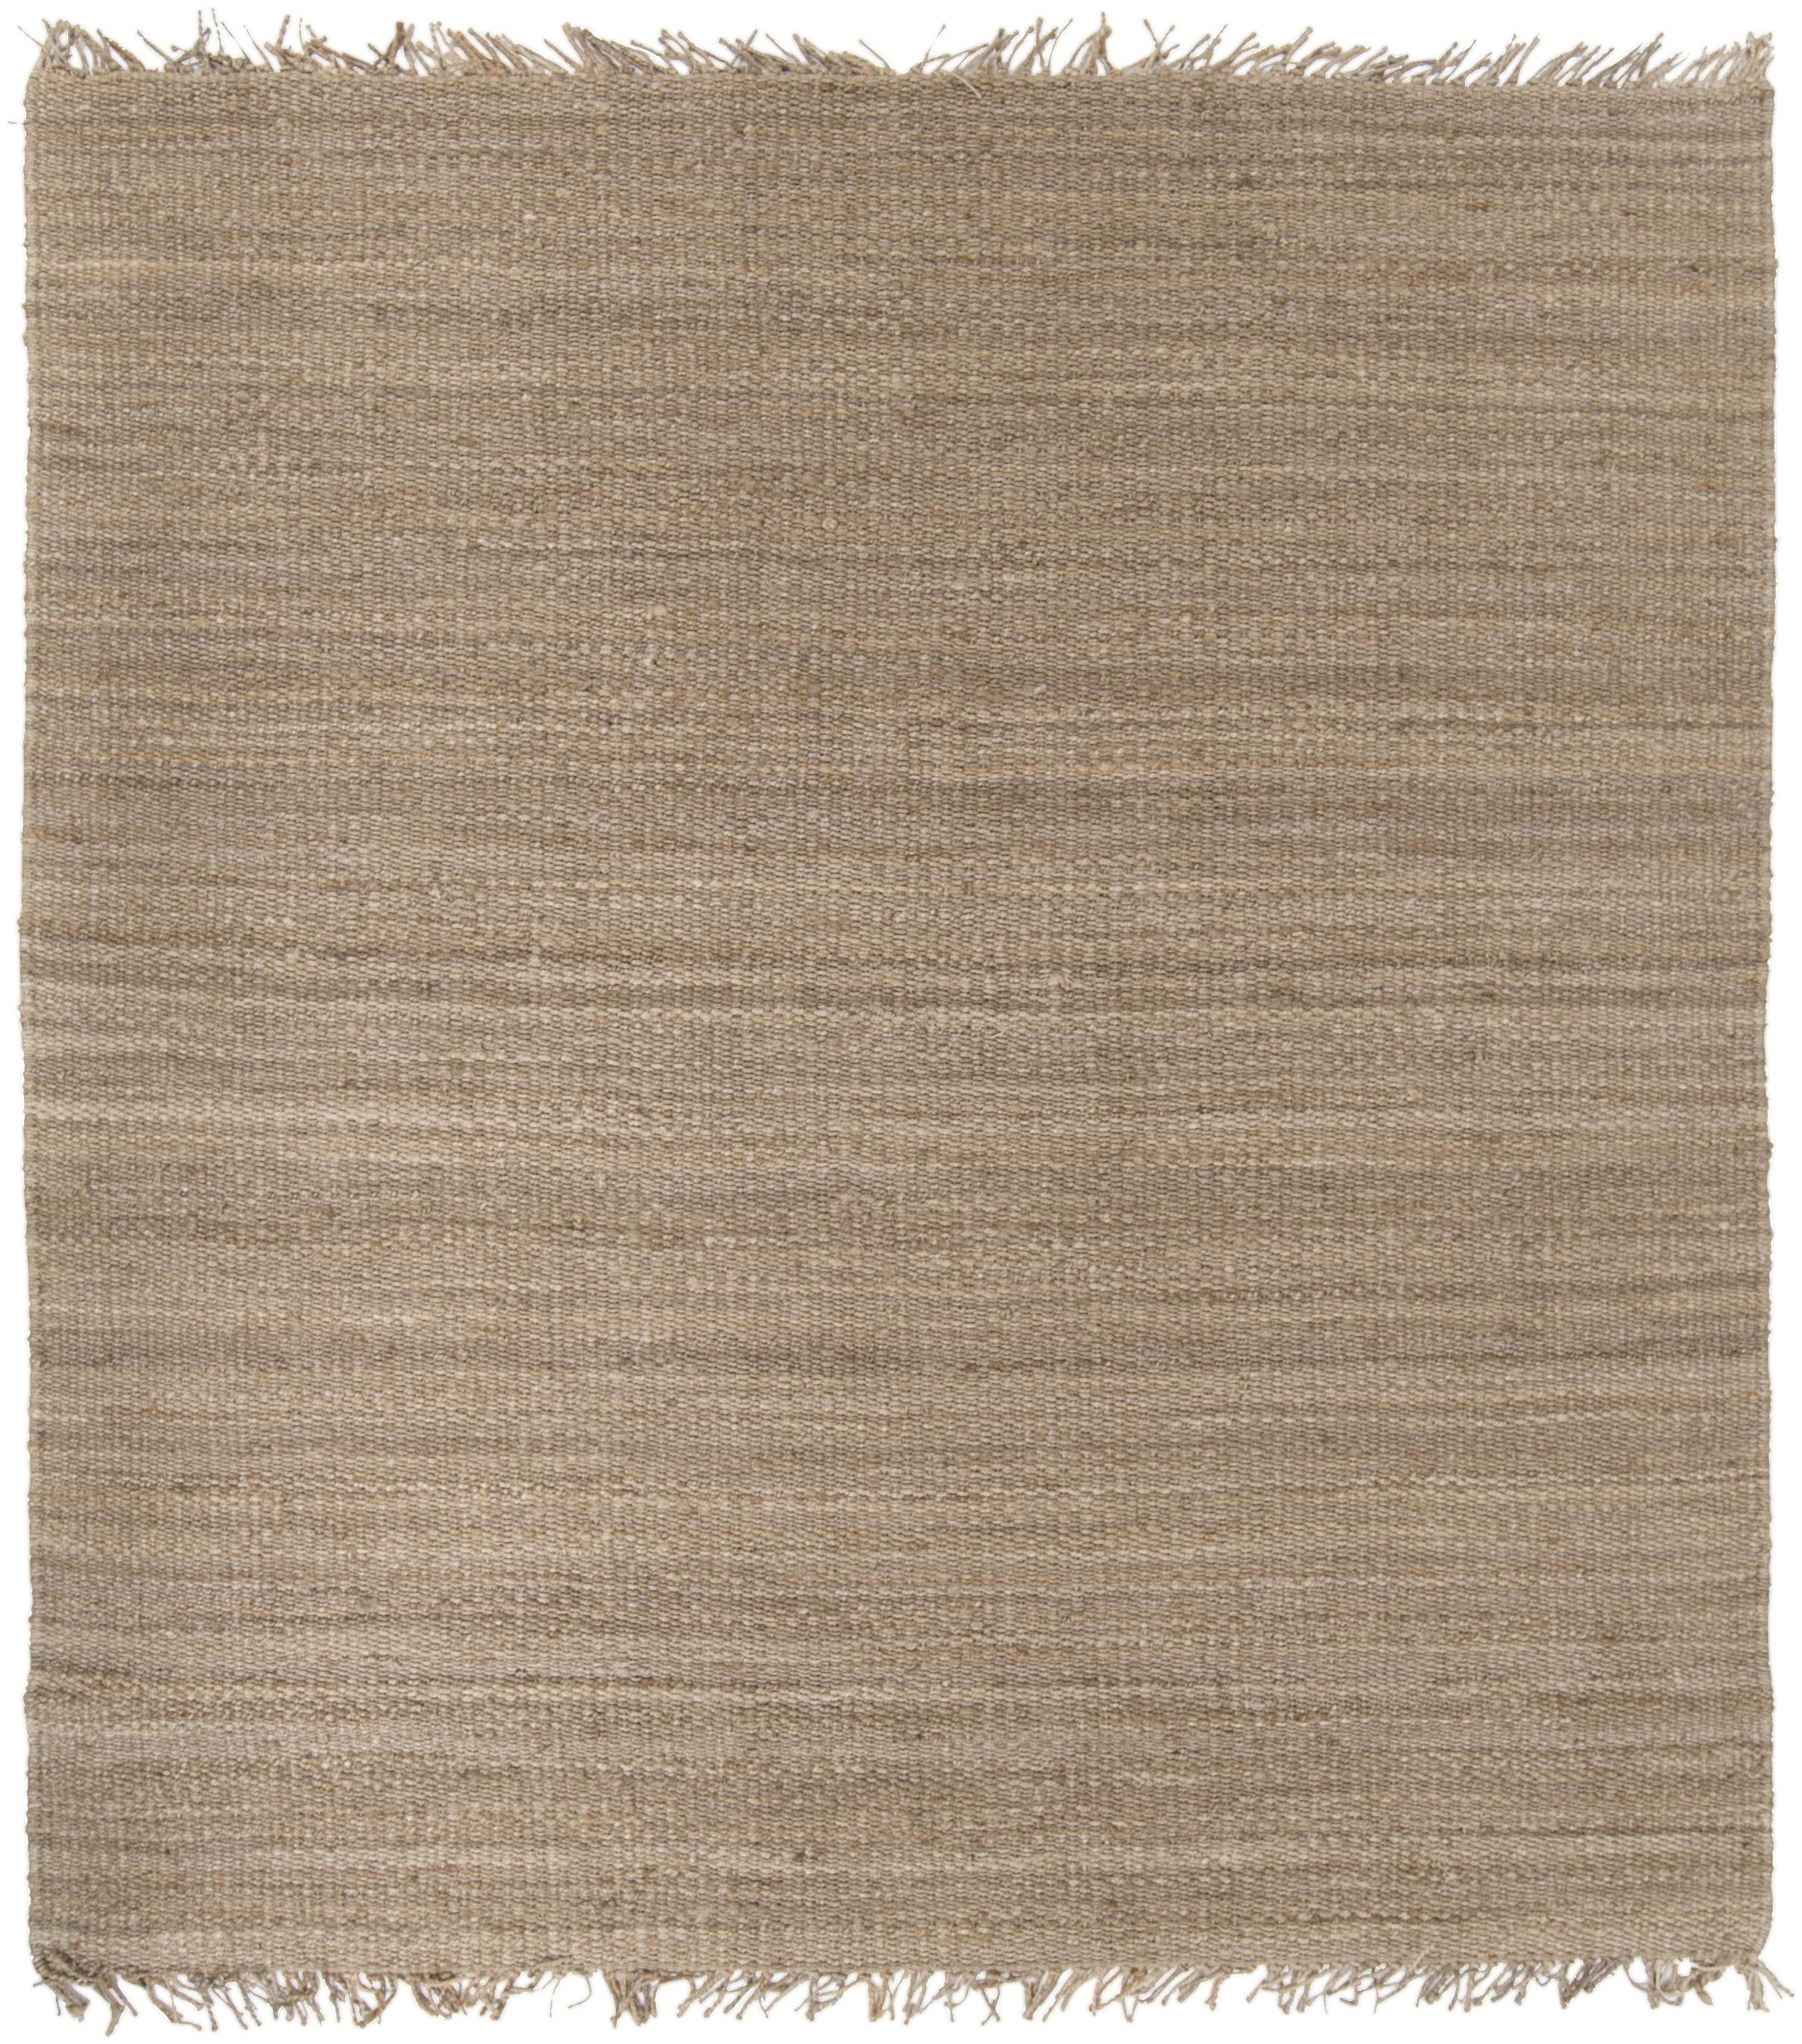 Surya Jute Natural 8' Square - Item Number: J-8SQ